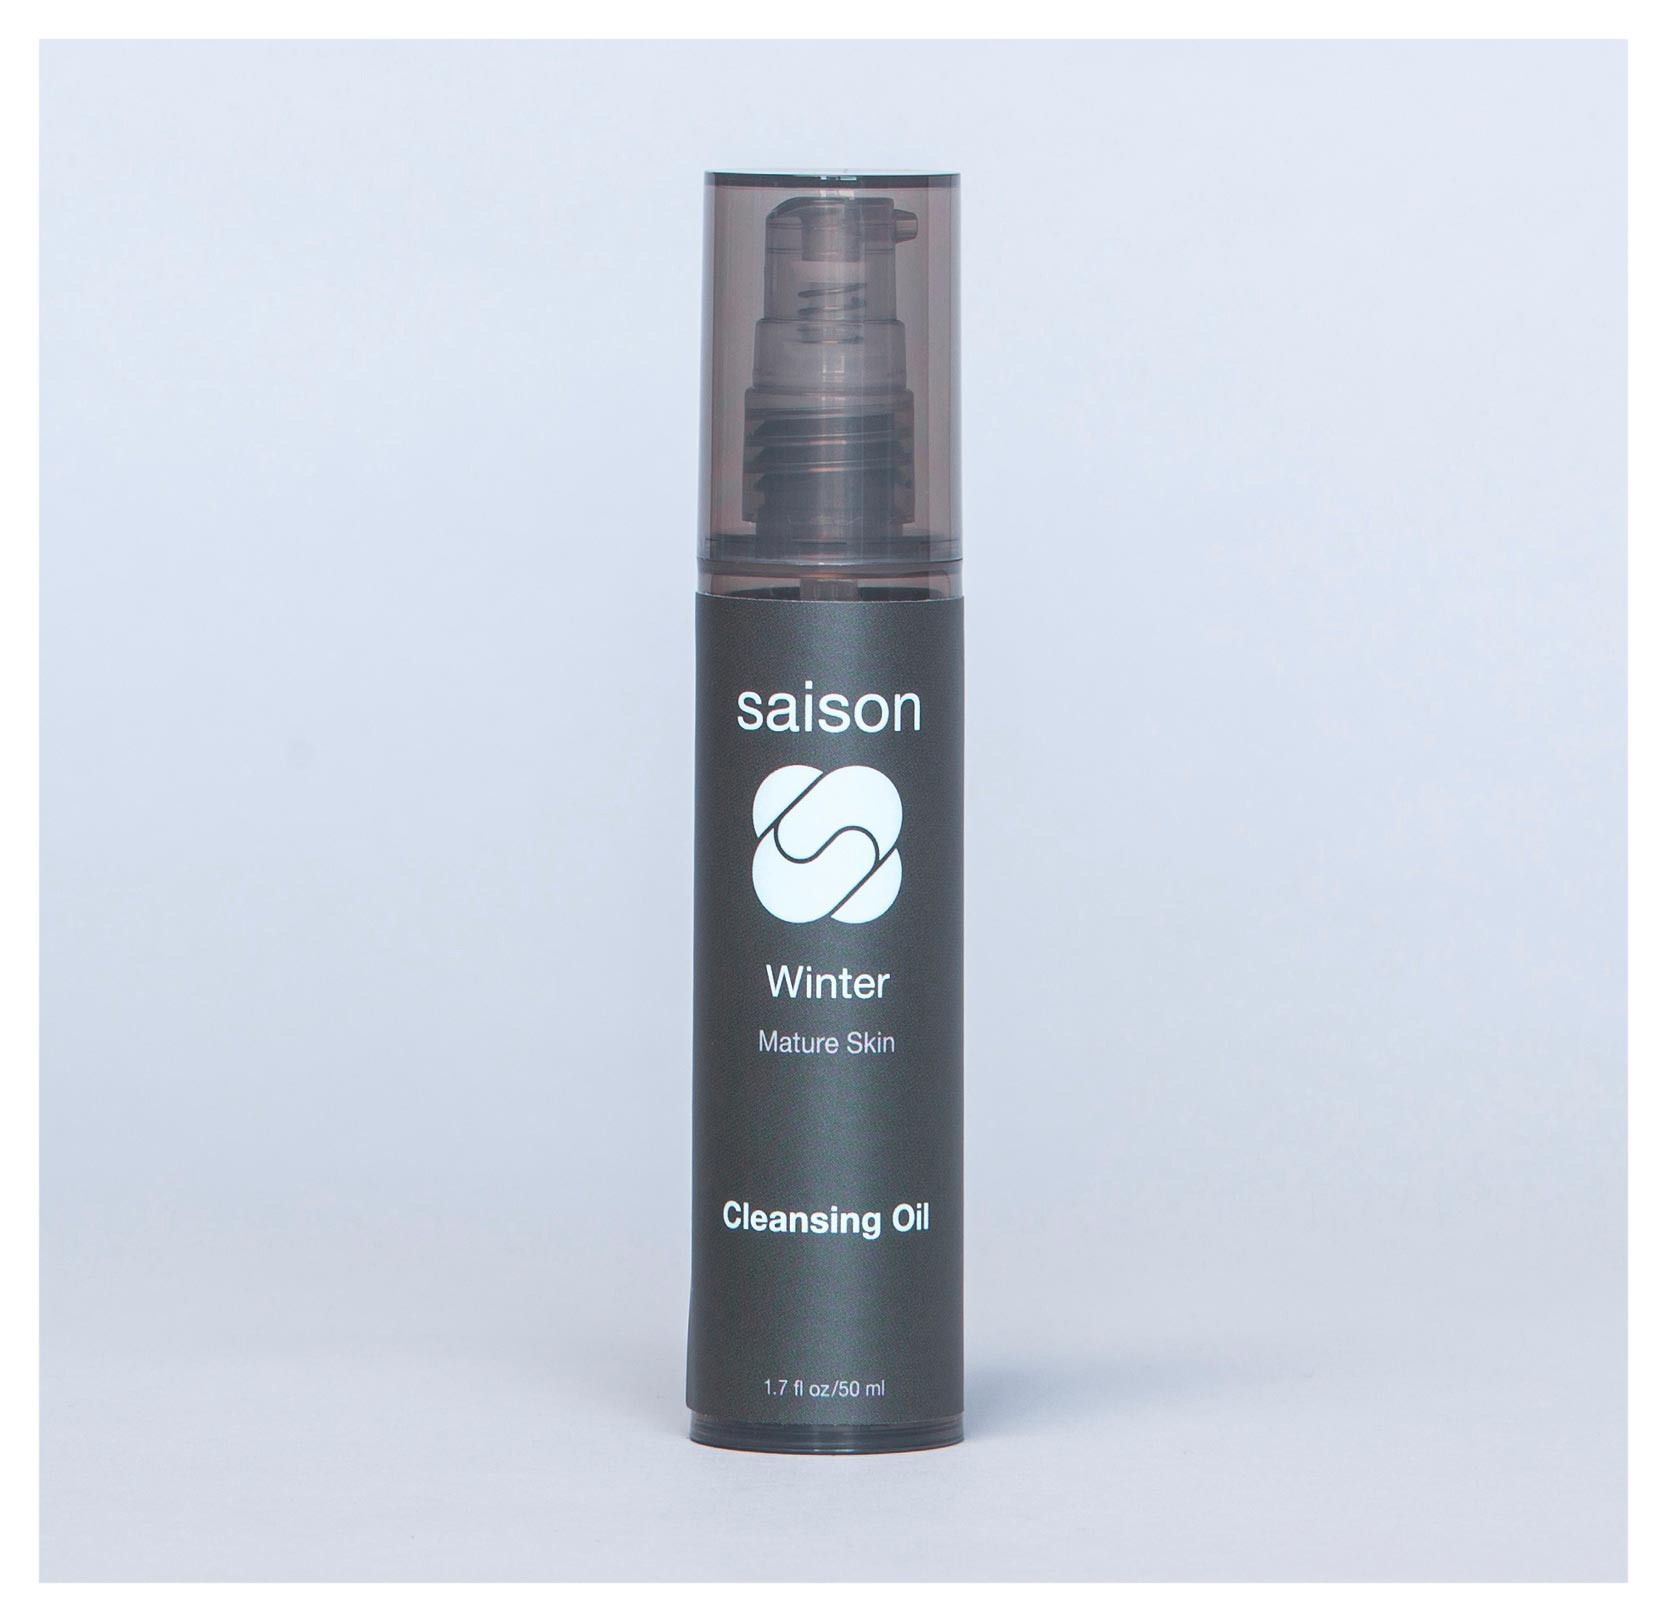 Saison Winter Cleansing Oil